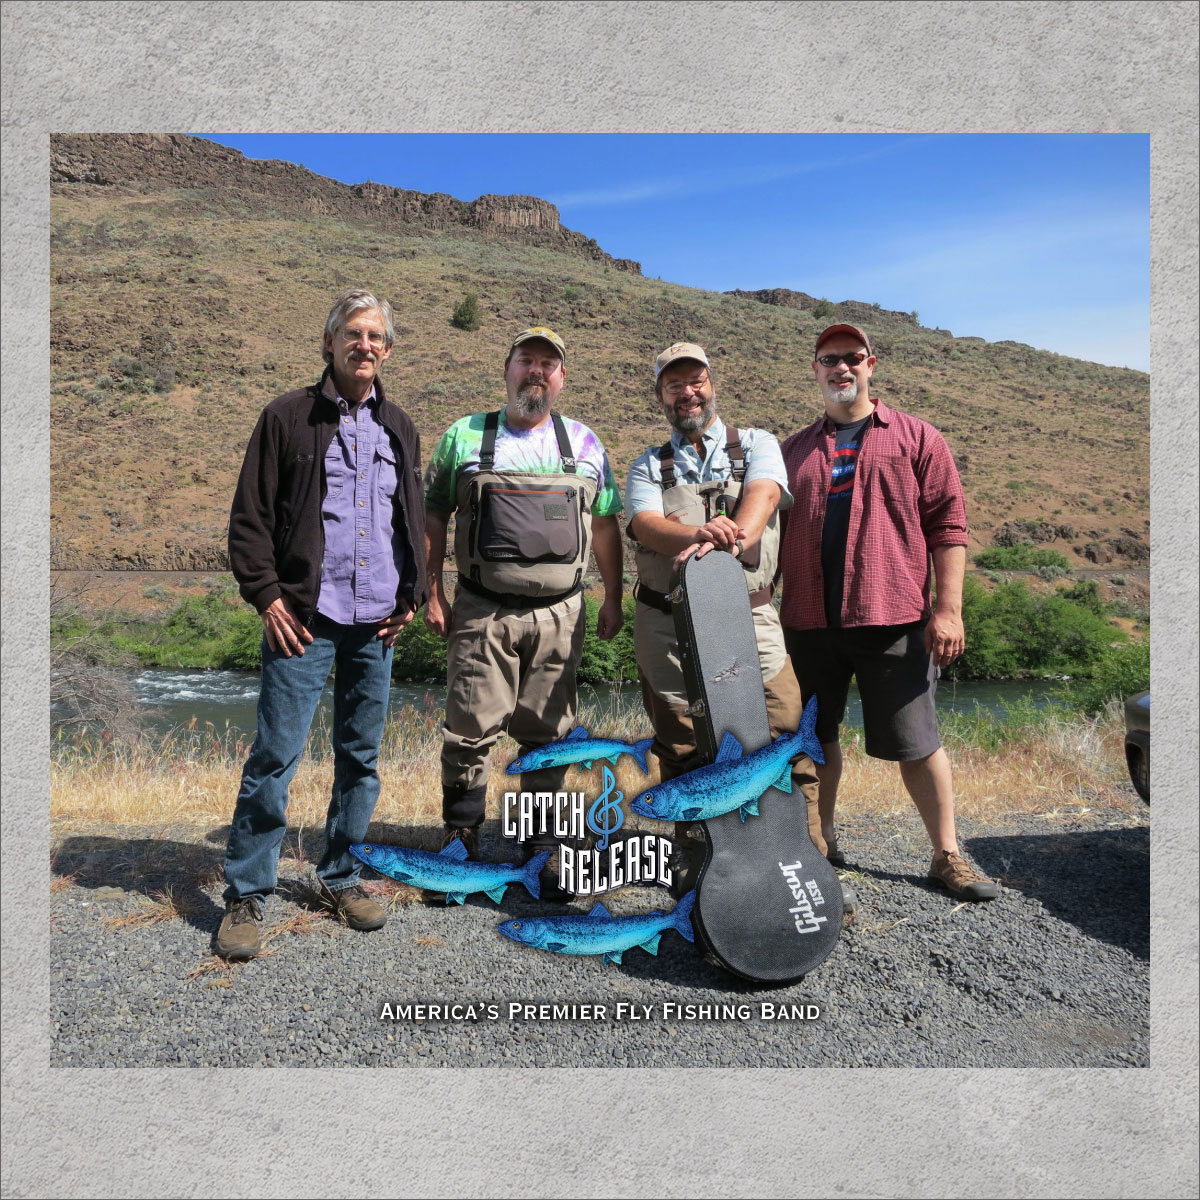 Catch & Release Band photographed on the Deschutes River near Maupin, Oregon